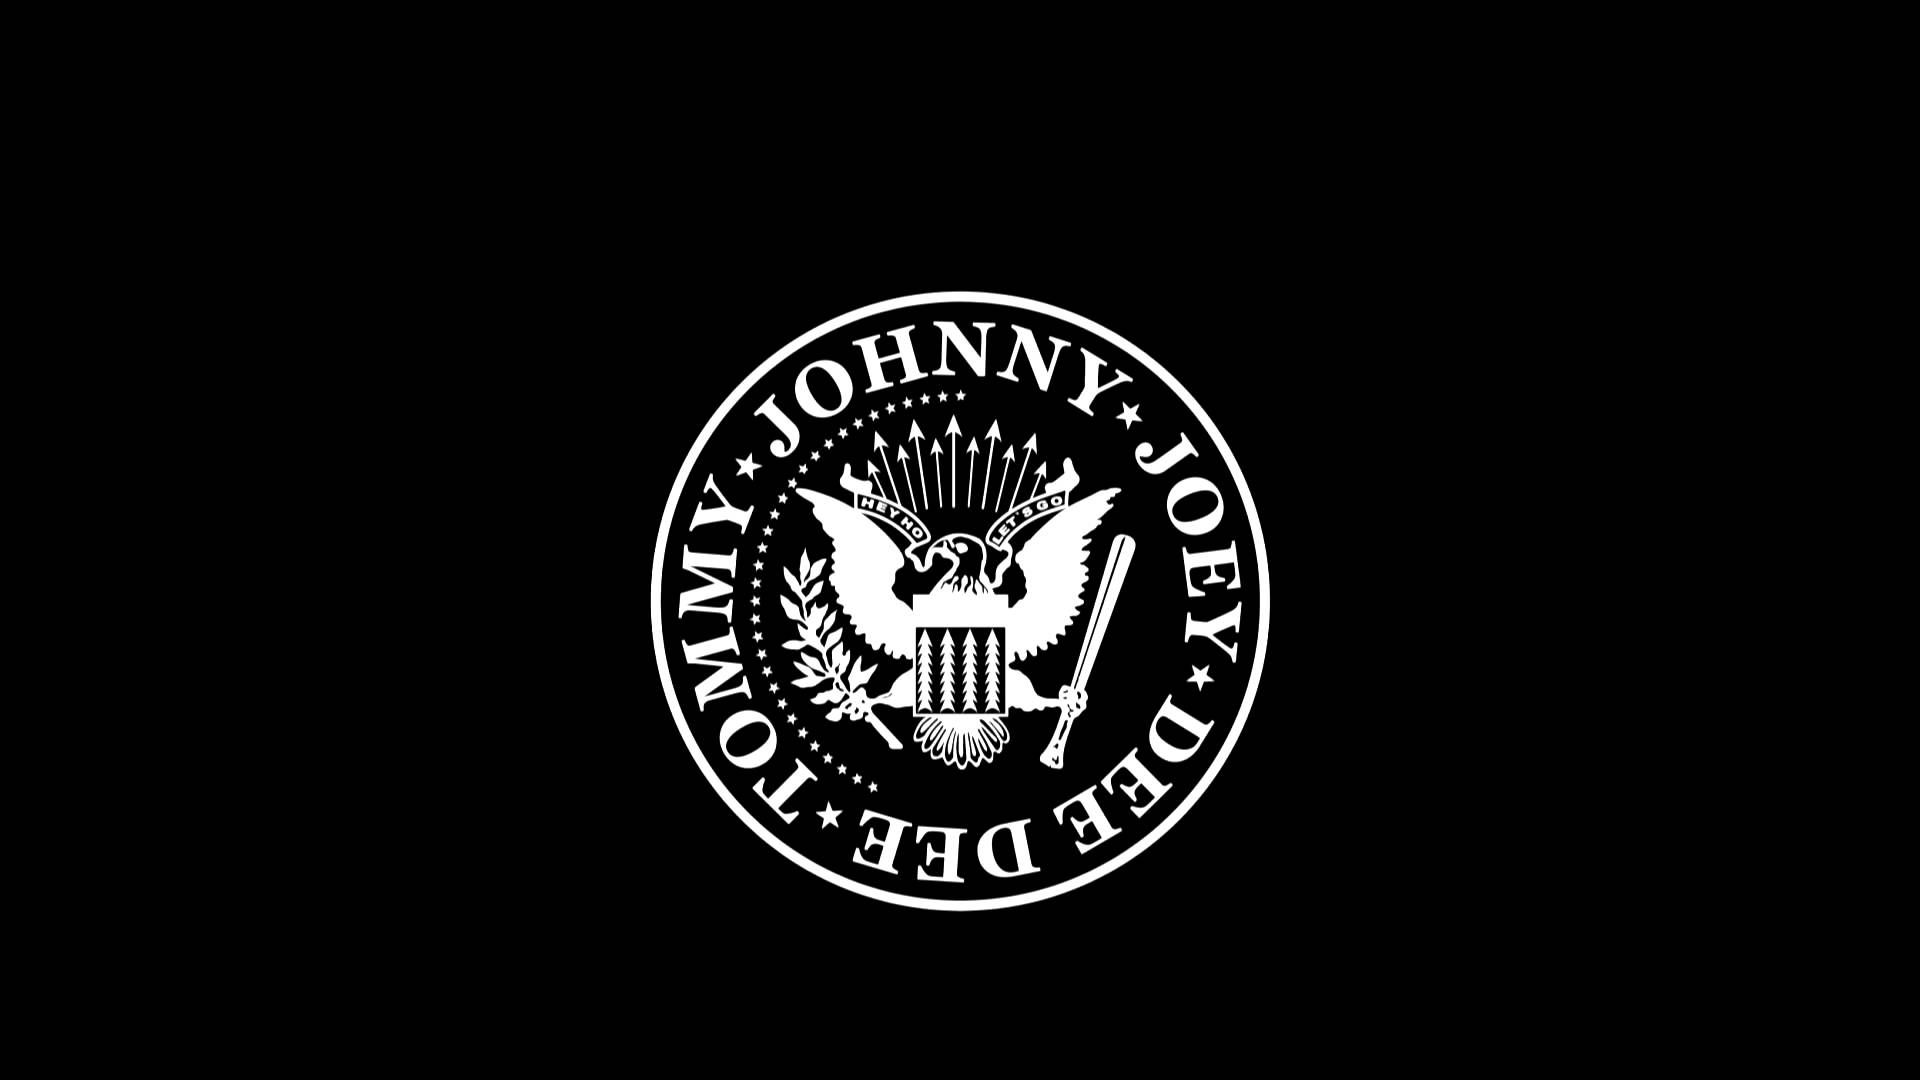 Ramones HD Wallpapers for desktop download